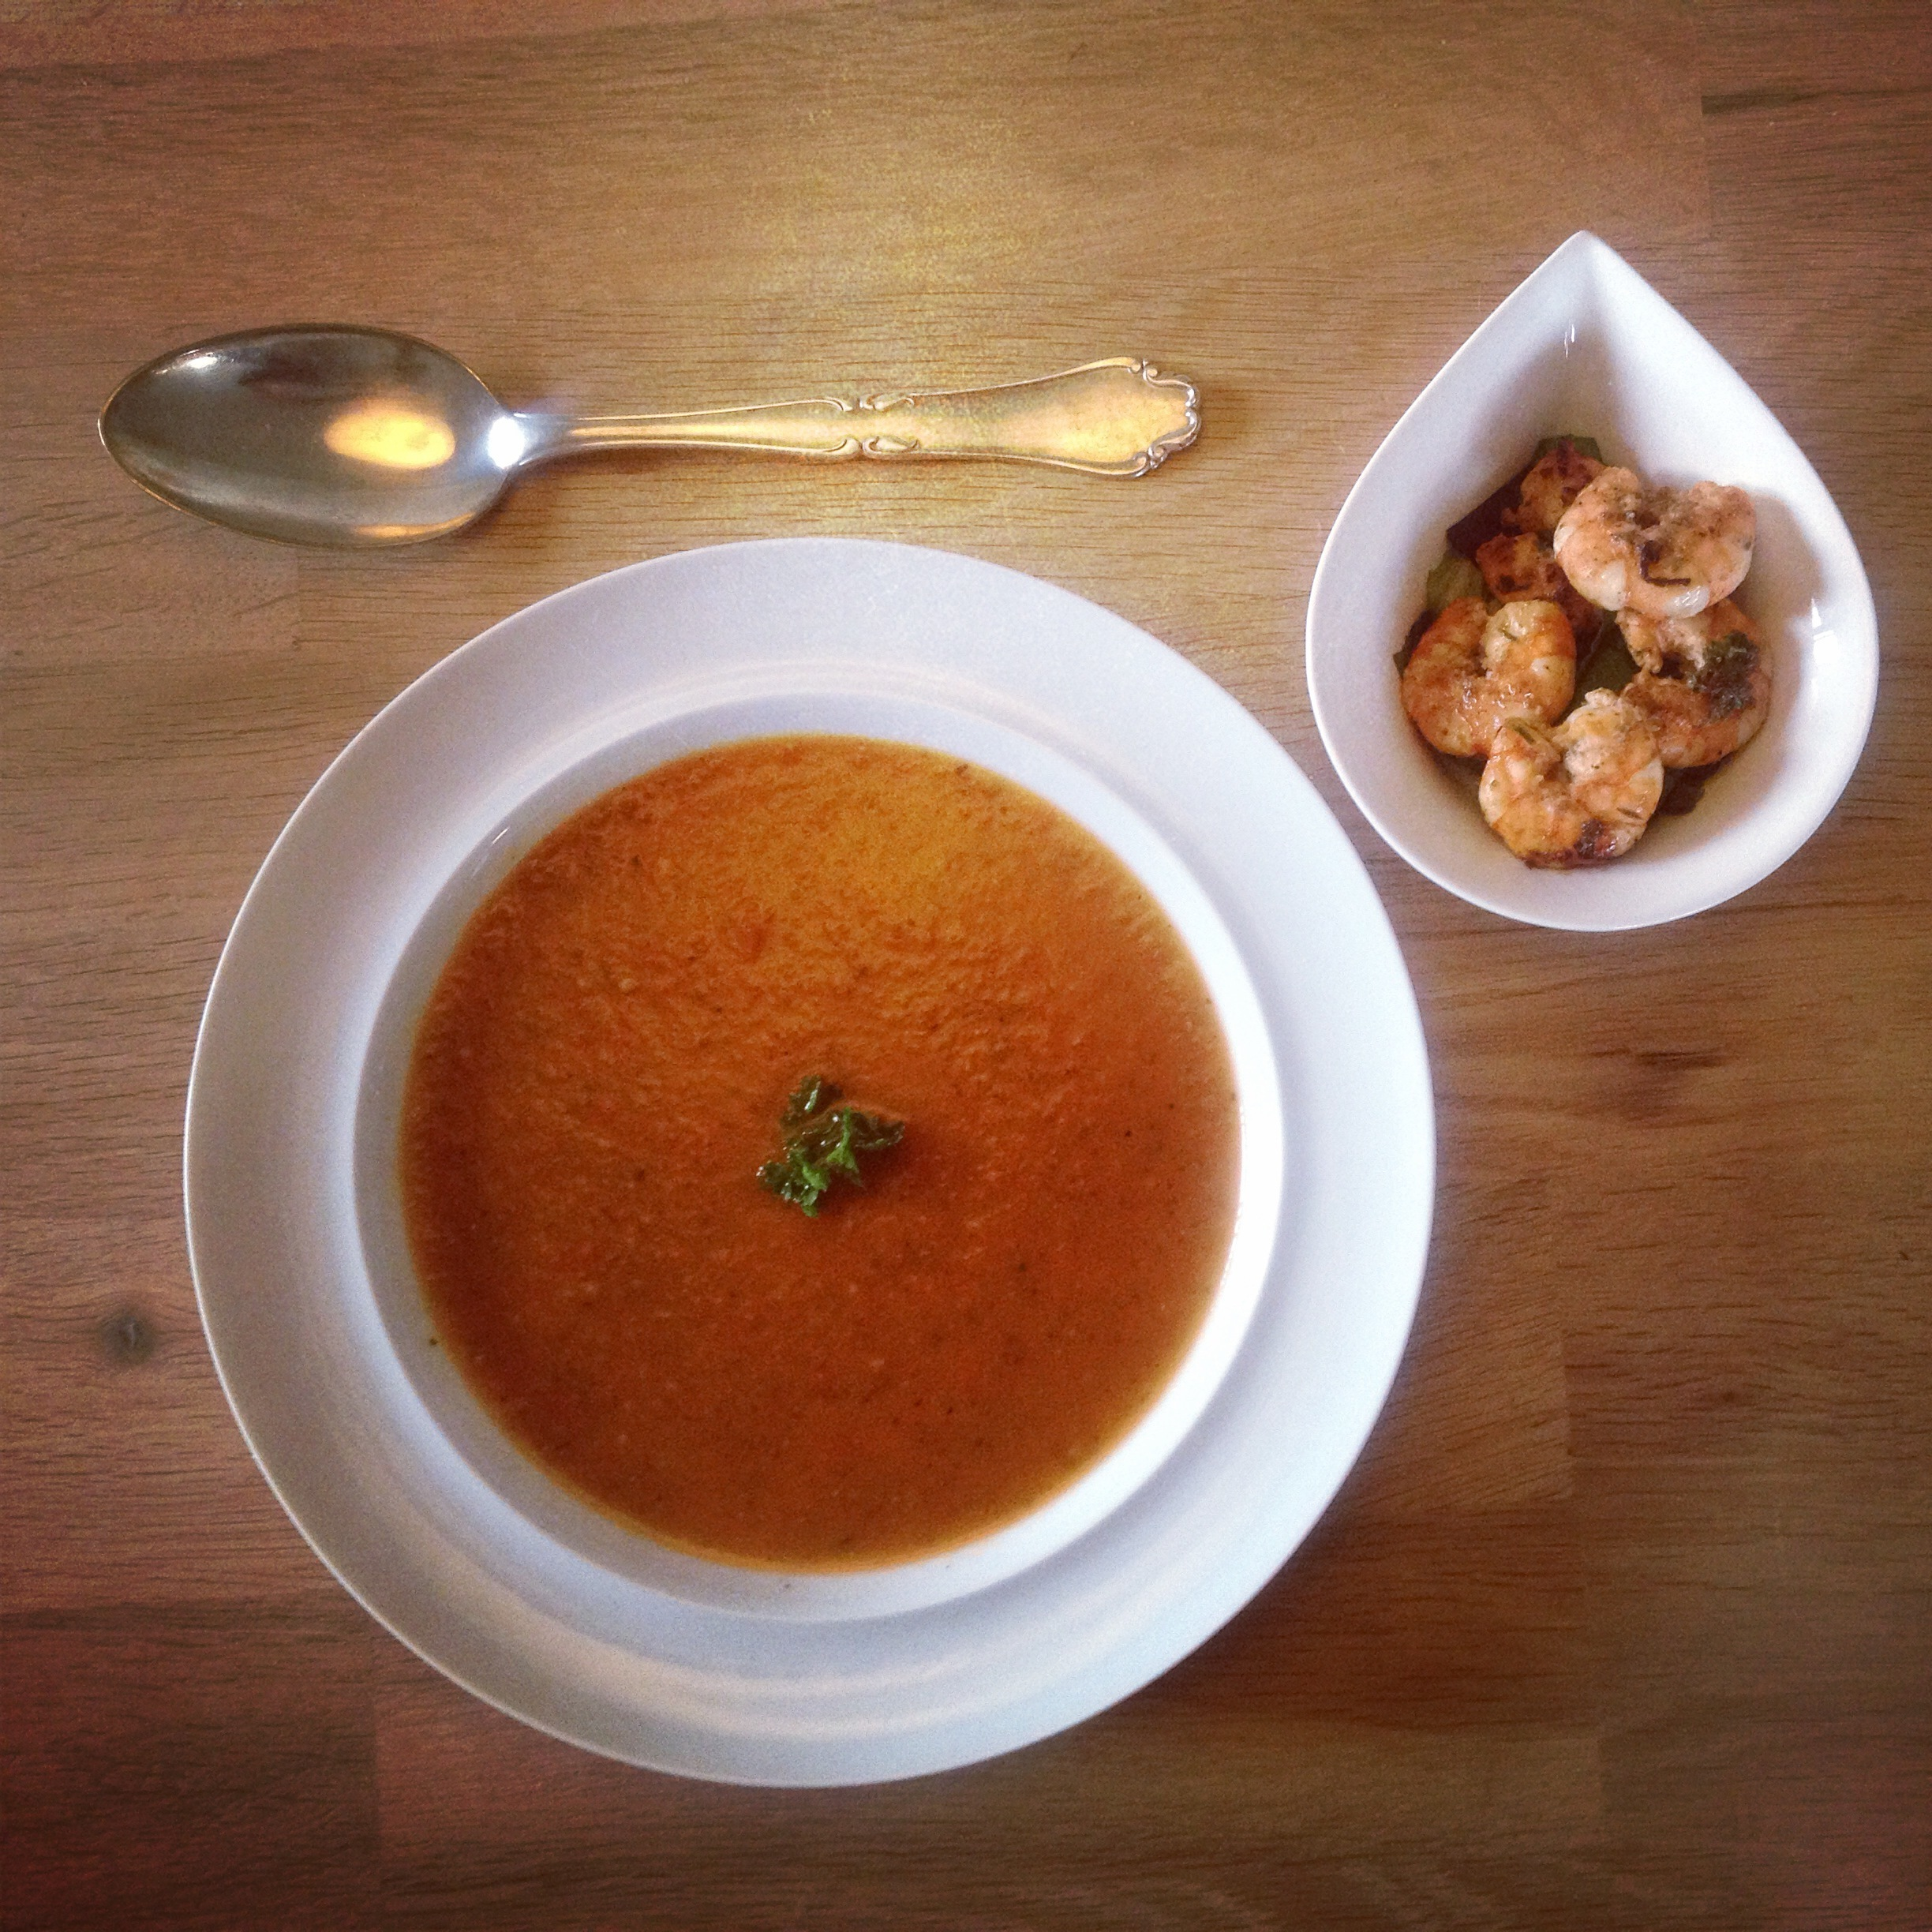 Spicy tomat suppe med tigerreger